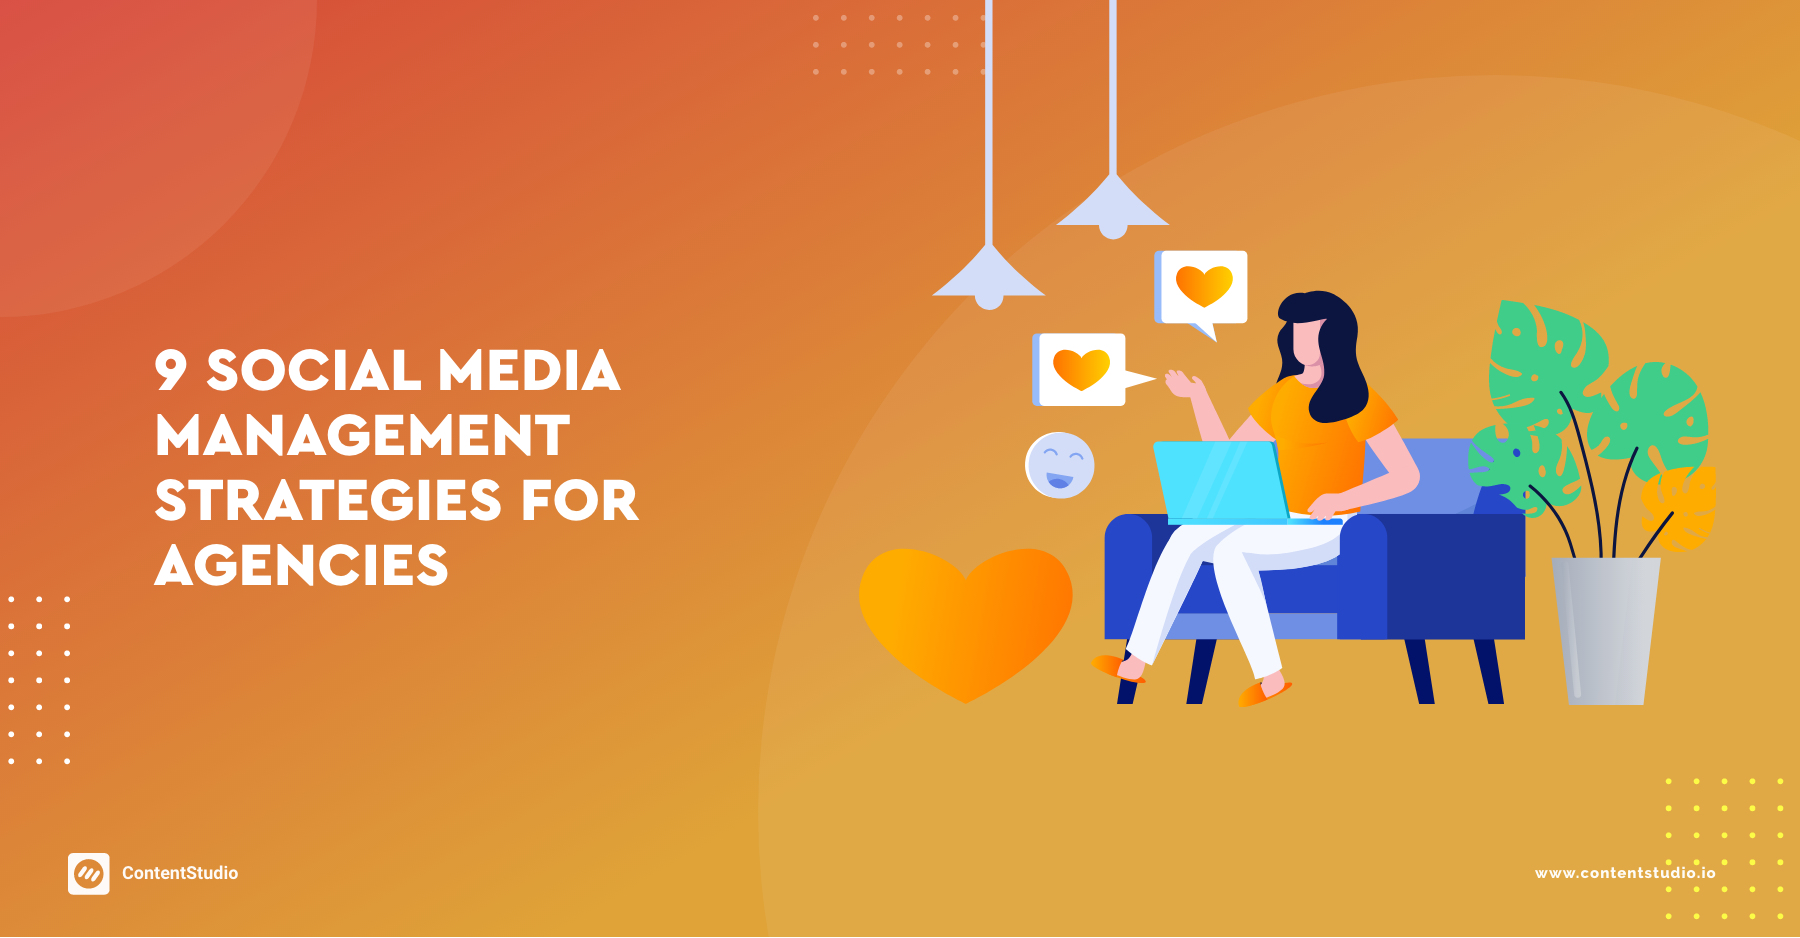 9 Social Media Management Strategies for Agencies